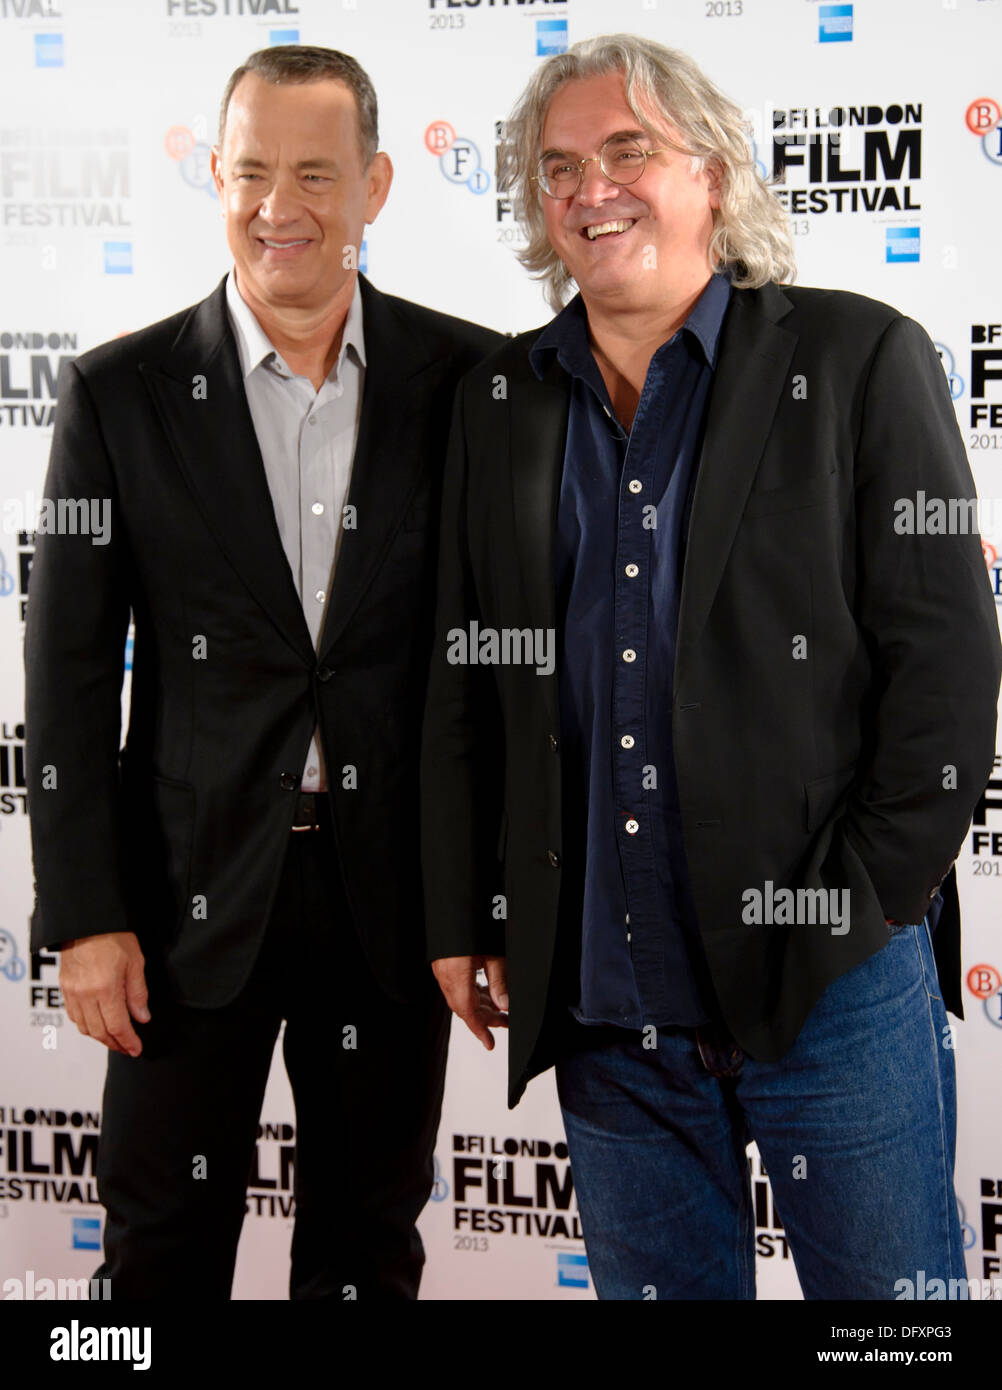 U.S actor Tom Hanks and British director Paul Greengrass arrive for the BFI London Film Festival Captain Phillips - Stock Image